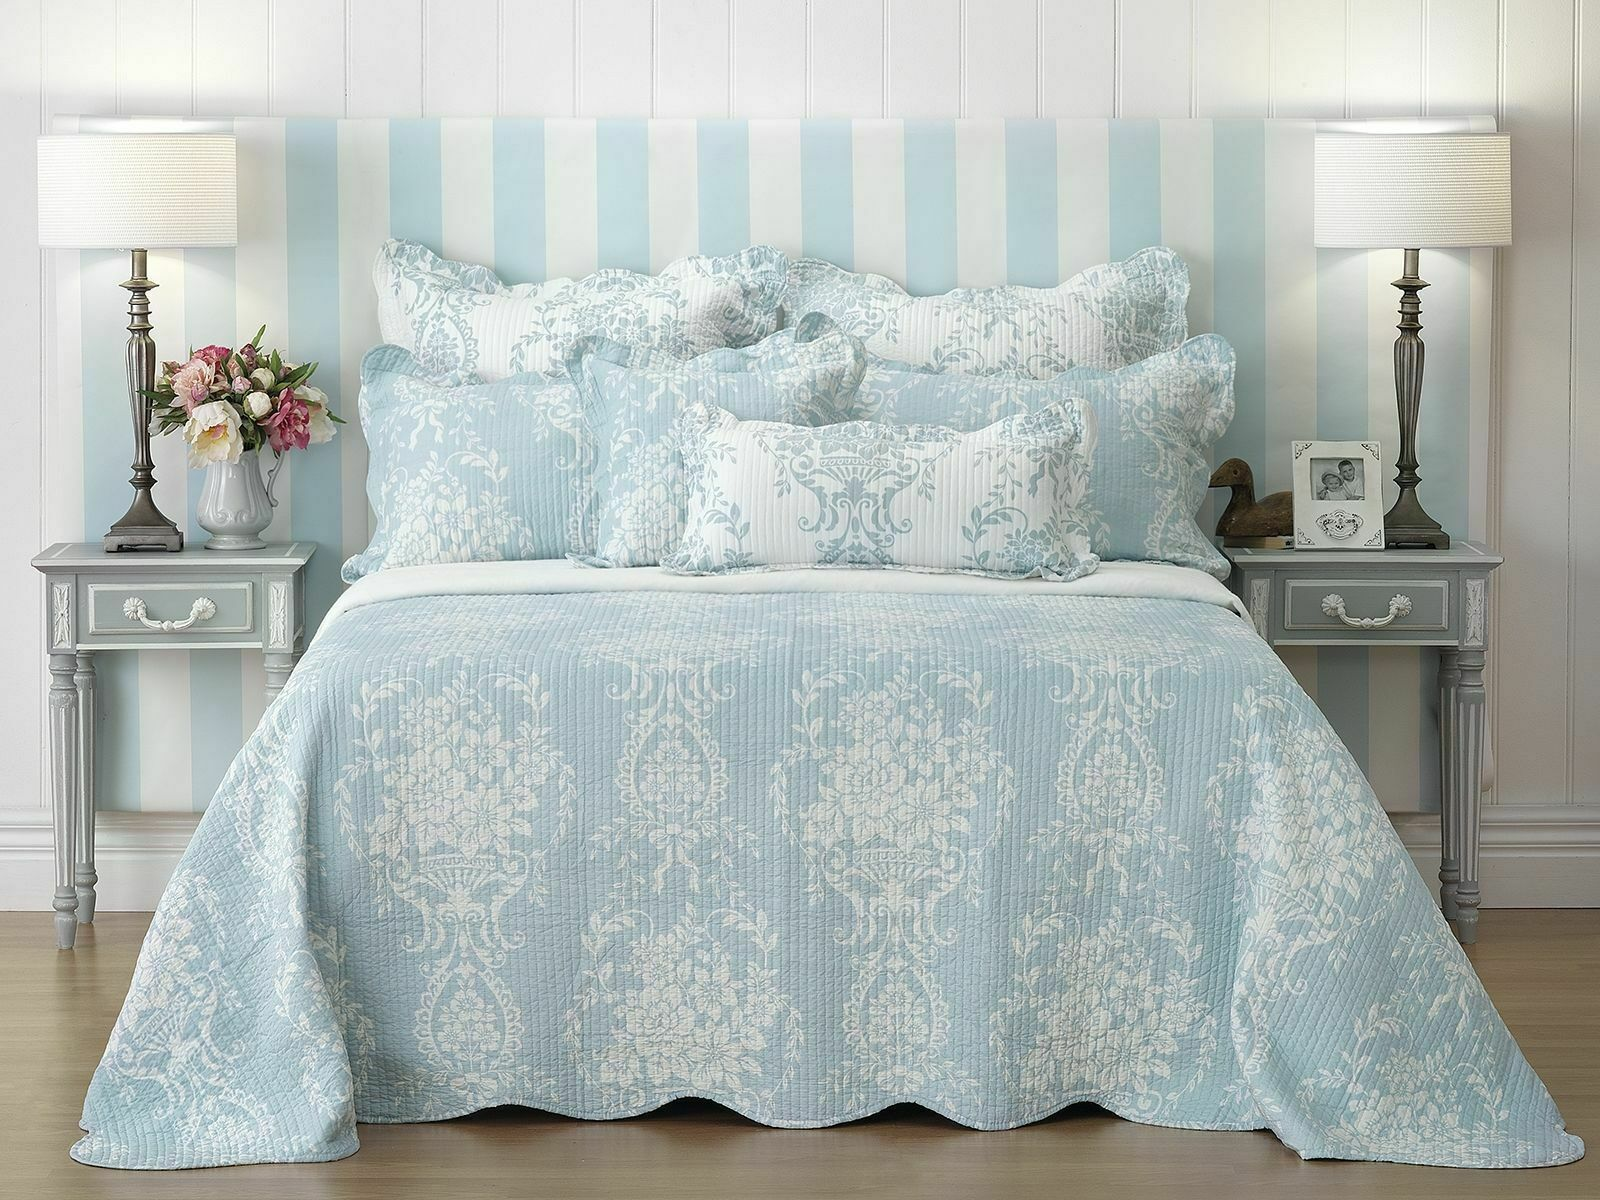 Bianca Florence blu Bedspread Set in All Dimensiones